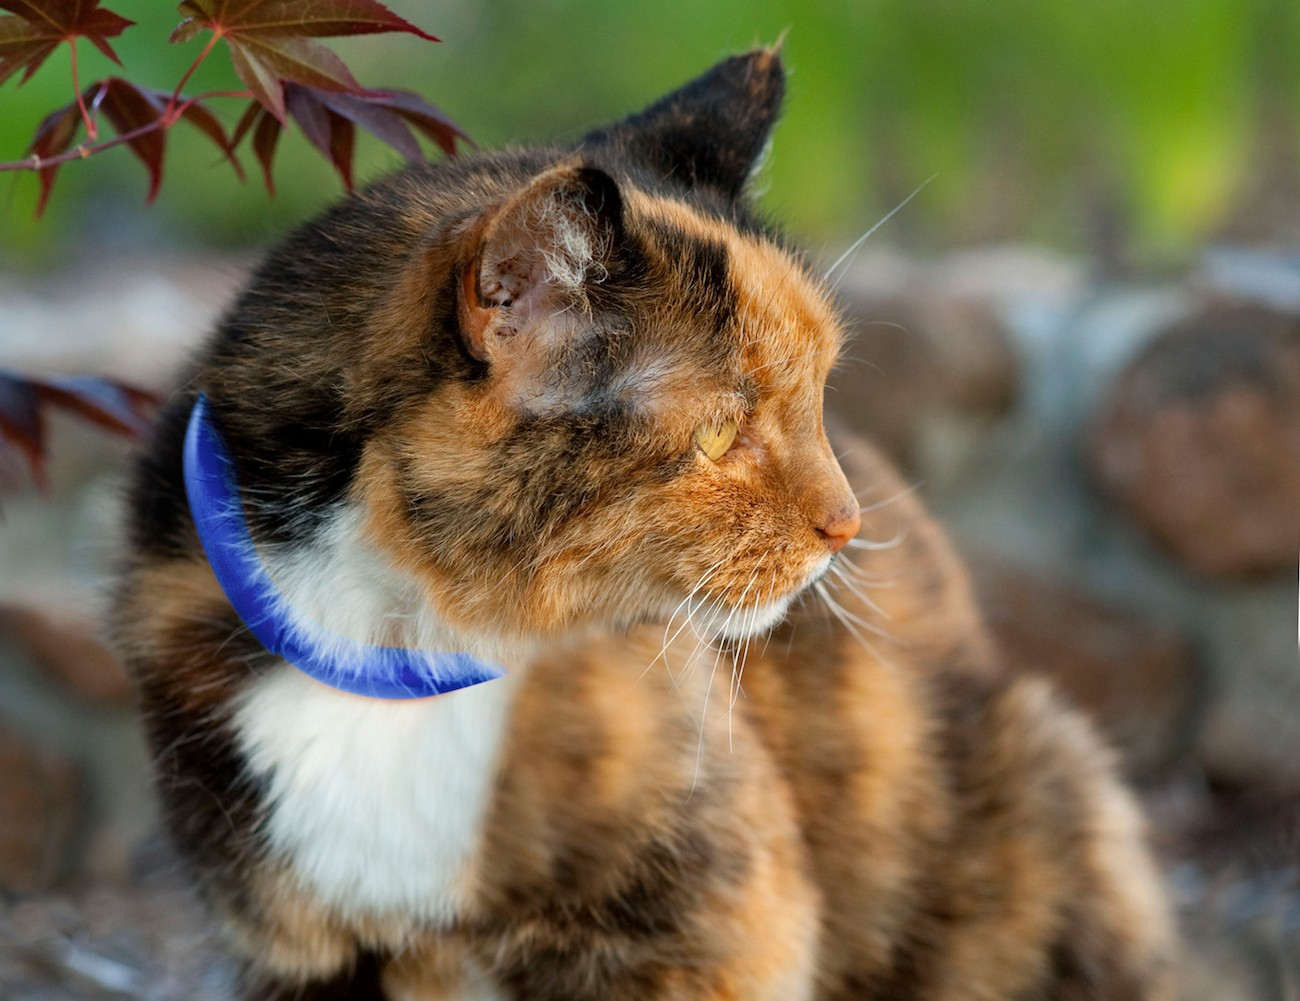 The Scollar Mini Smart Pet Collar Helps Your Pet at Every Stage